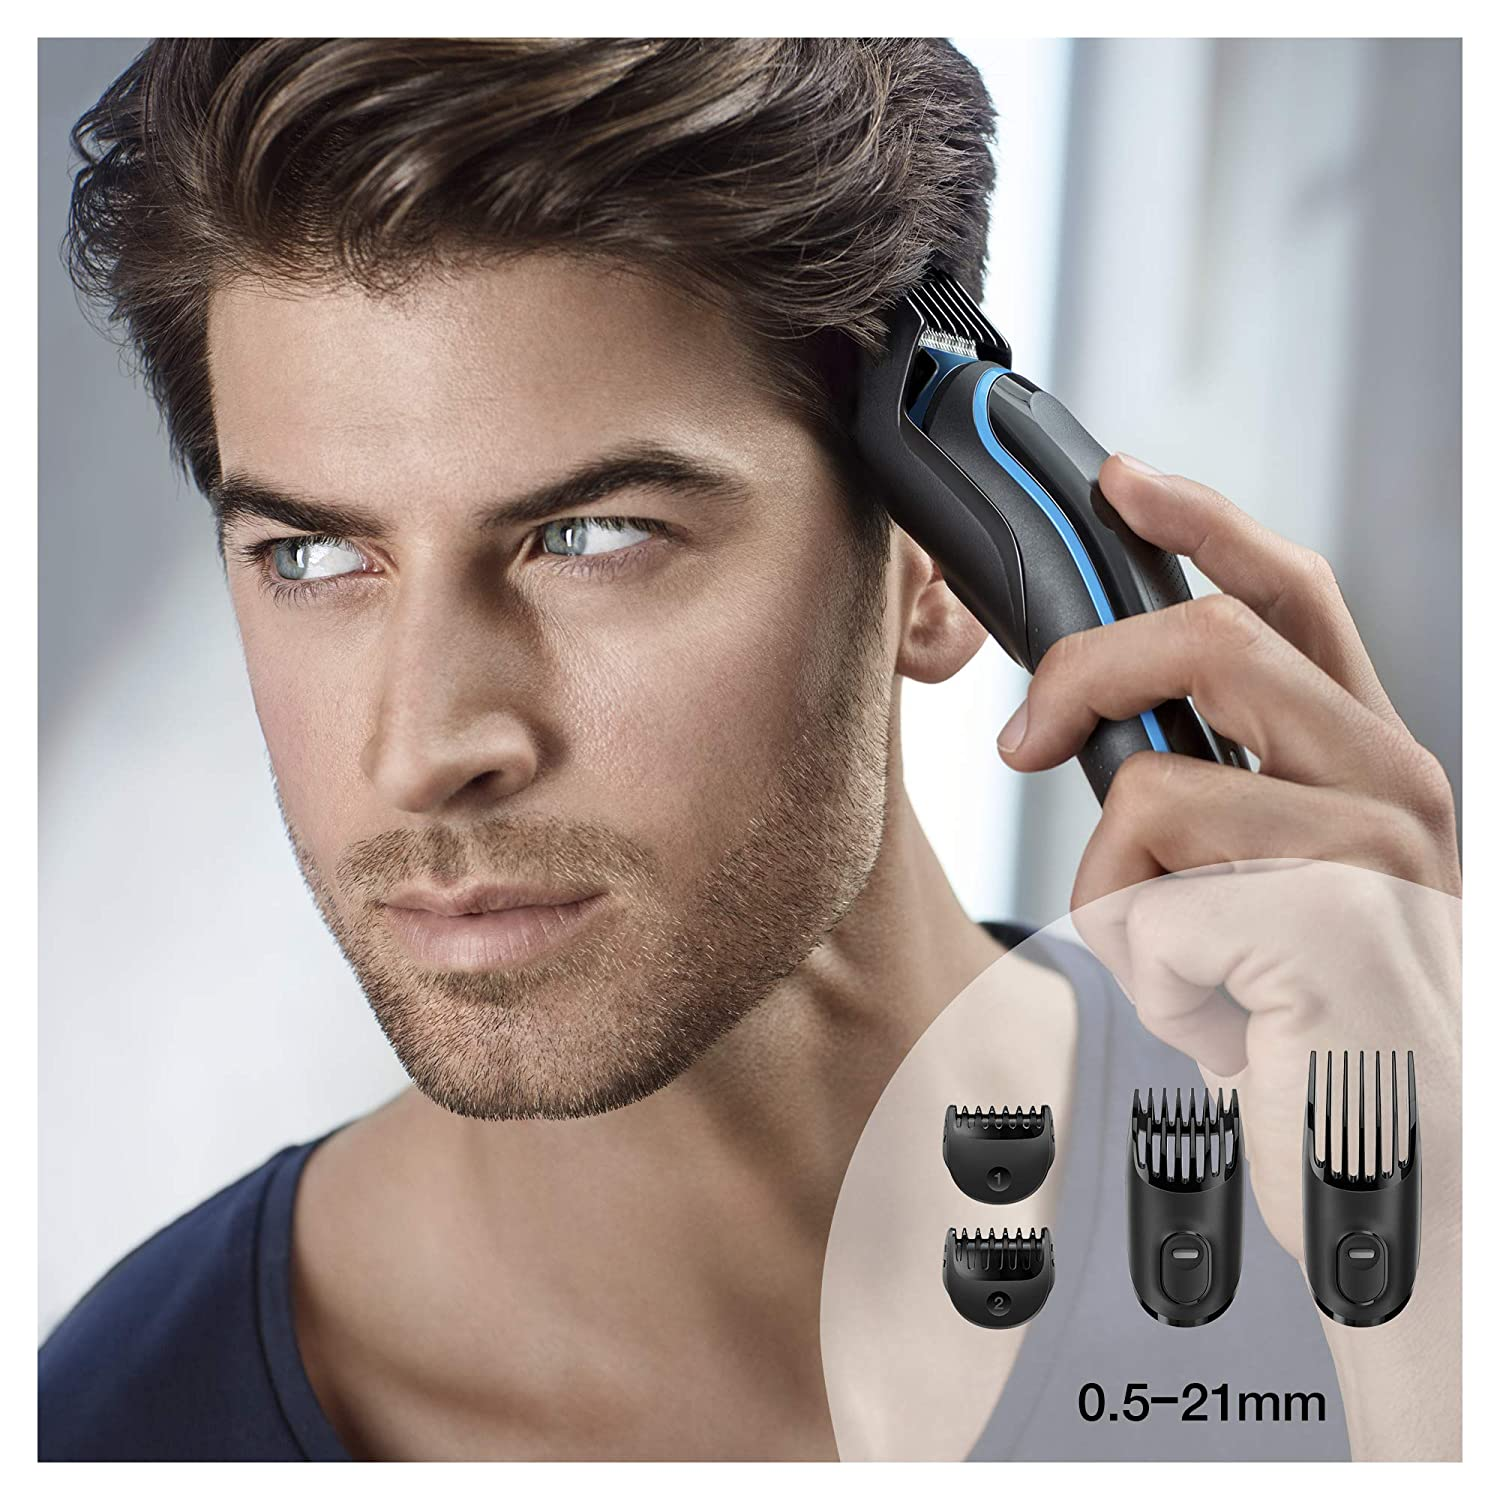 Braun Hair Clippers for Men MGK3980, 9-in-1 Beard Trimmer, Ear and Nose Trimmer, Body Groomer, Detail Trimmer enlarge